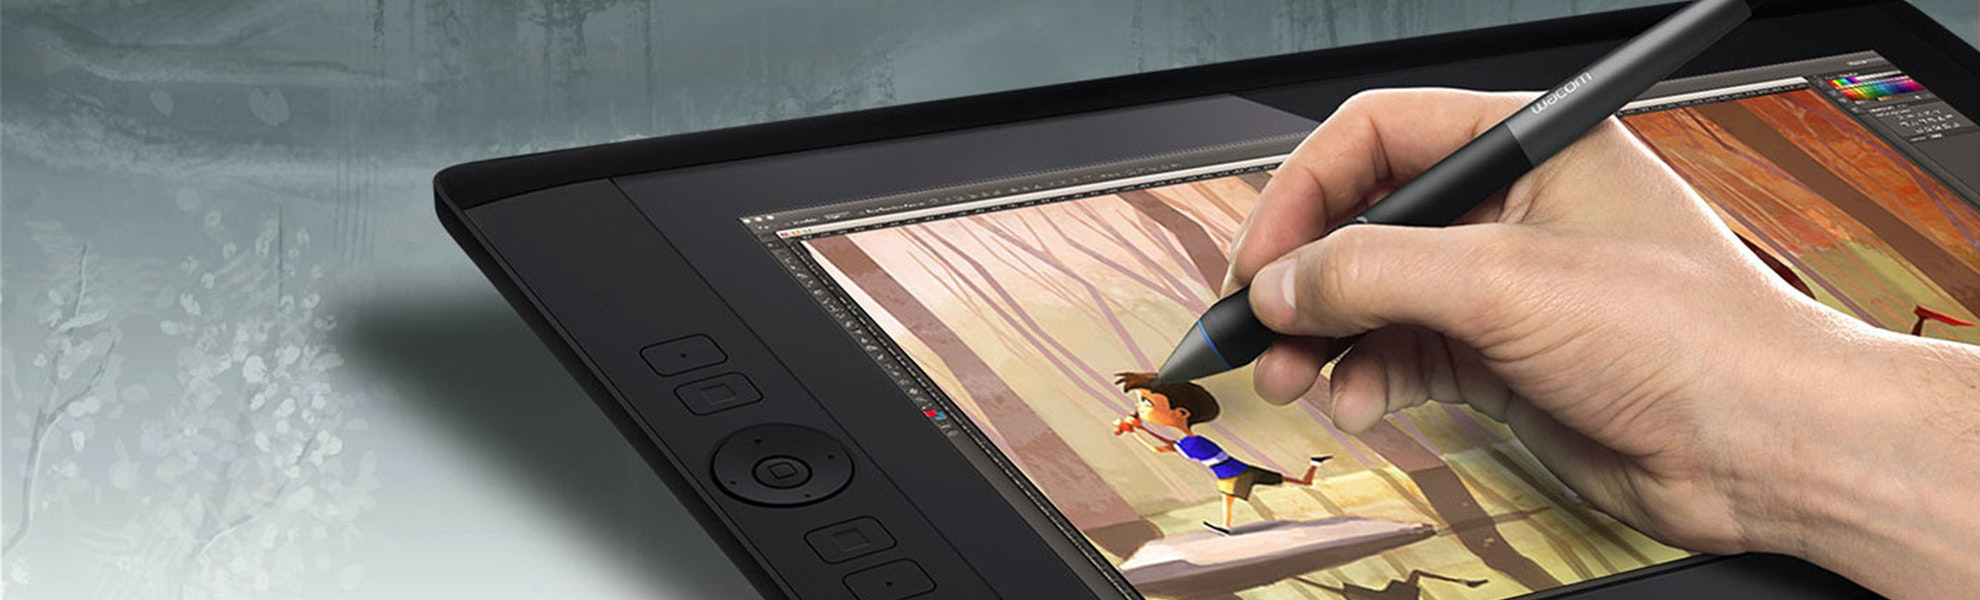 Wacom Cintiq 13hd Pen Touch Tablet Refurbished Price